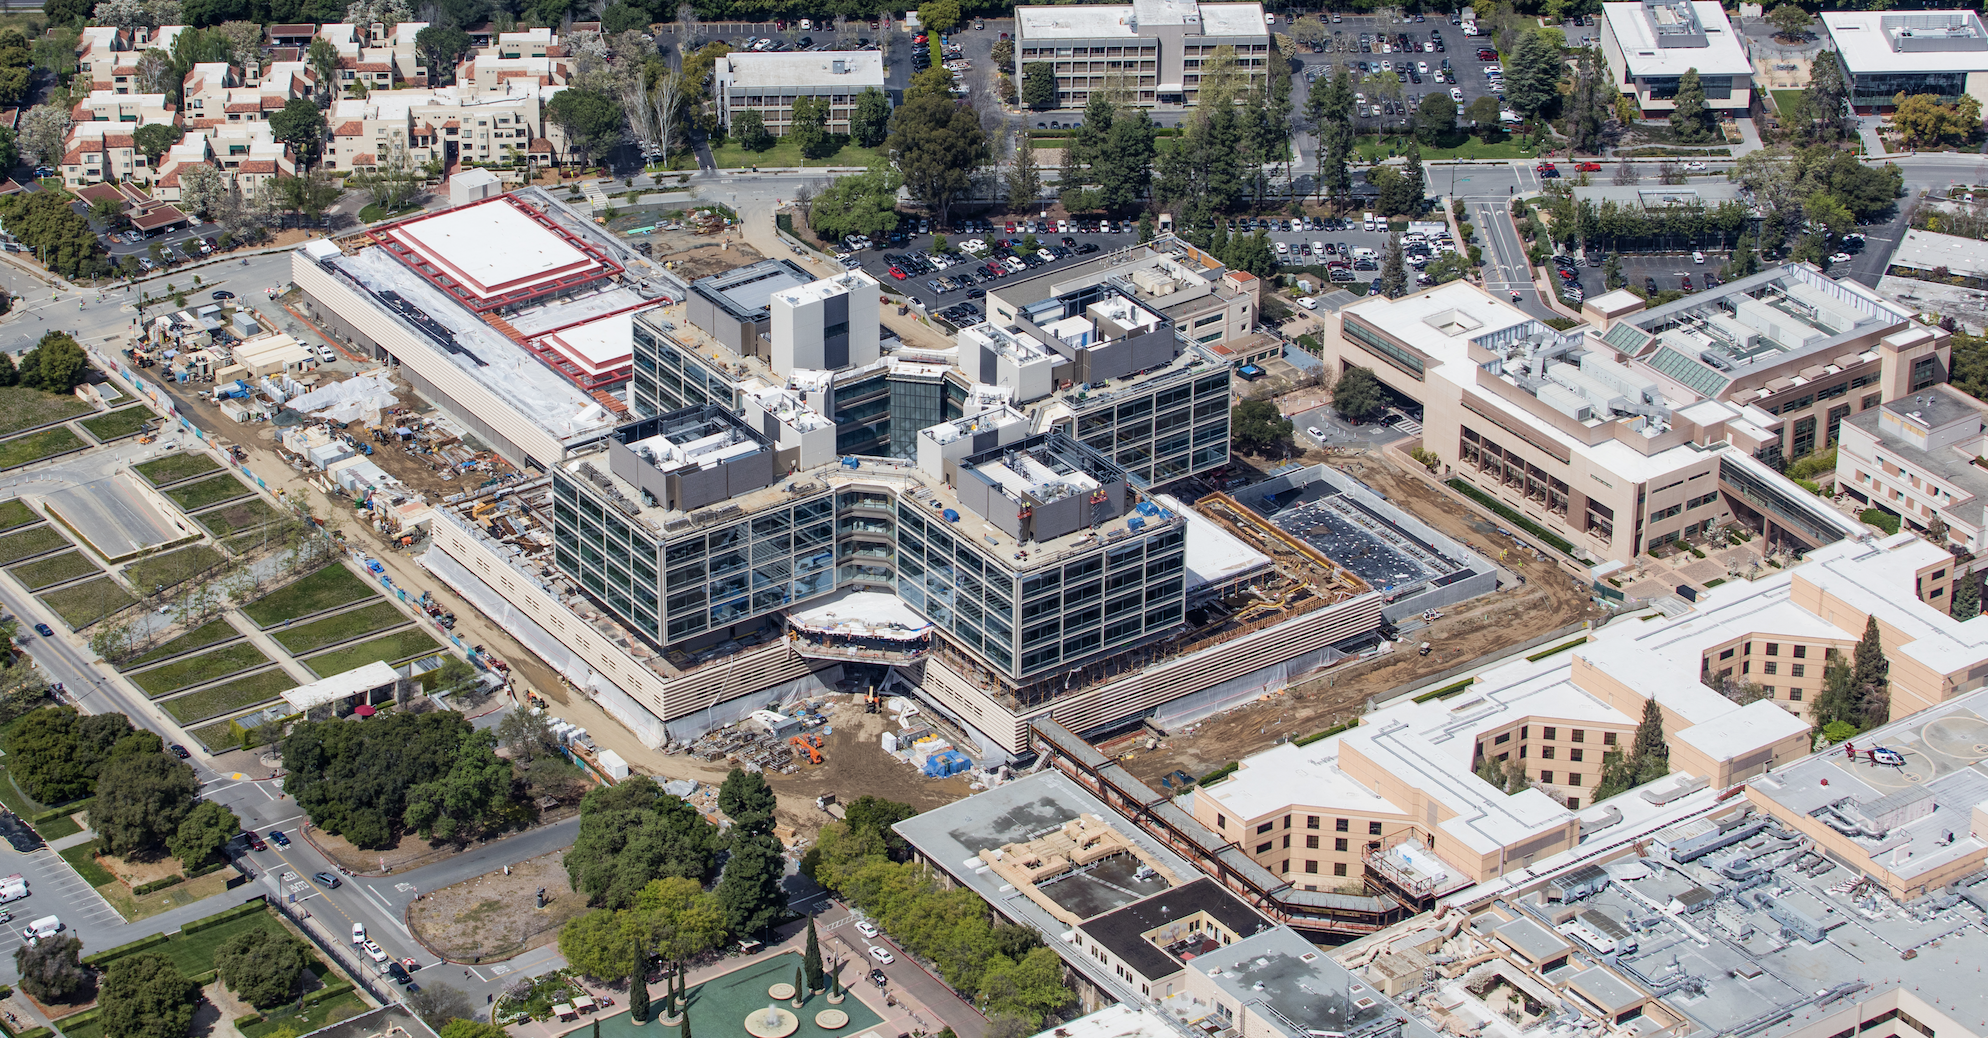 The new Stanford Hospital is currently under construction in Palo Alto, Calif.